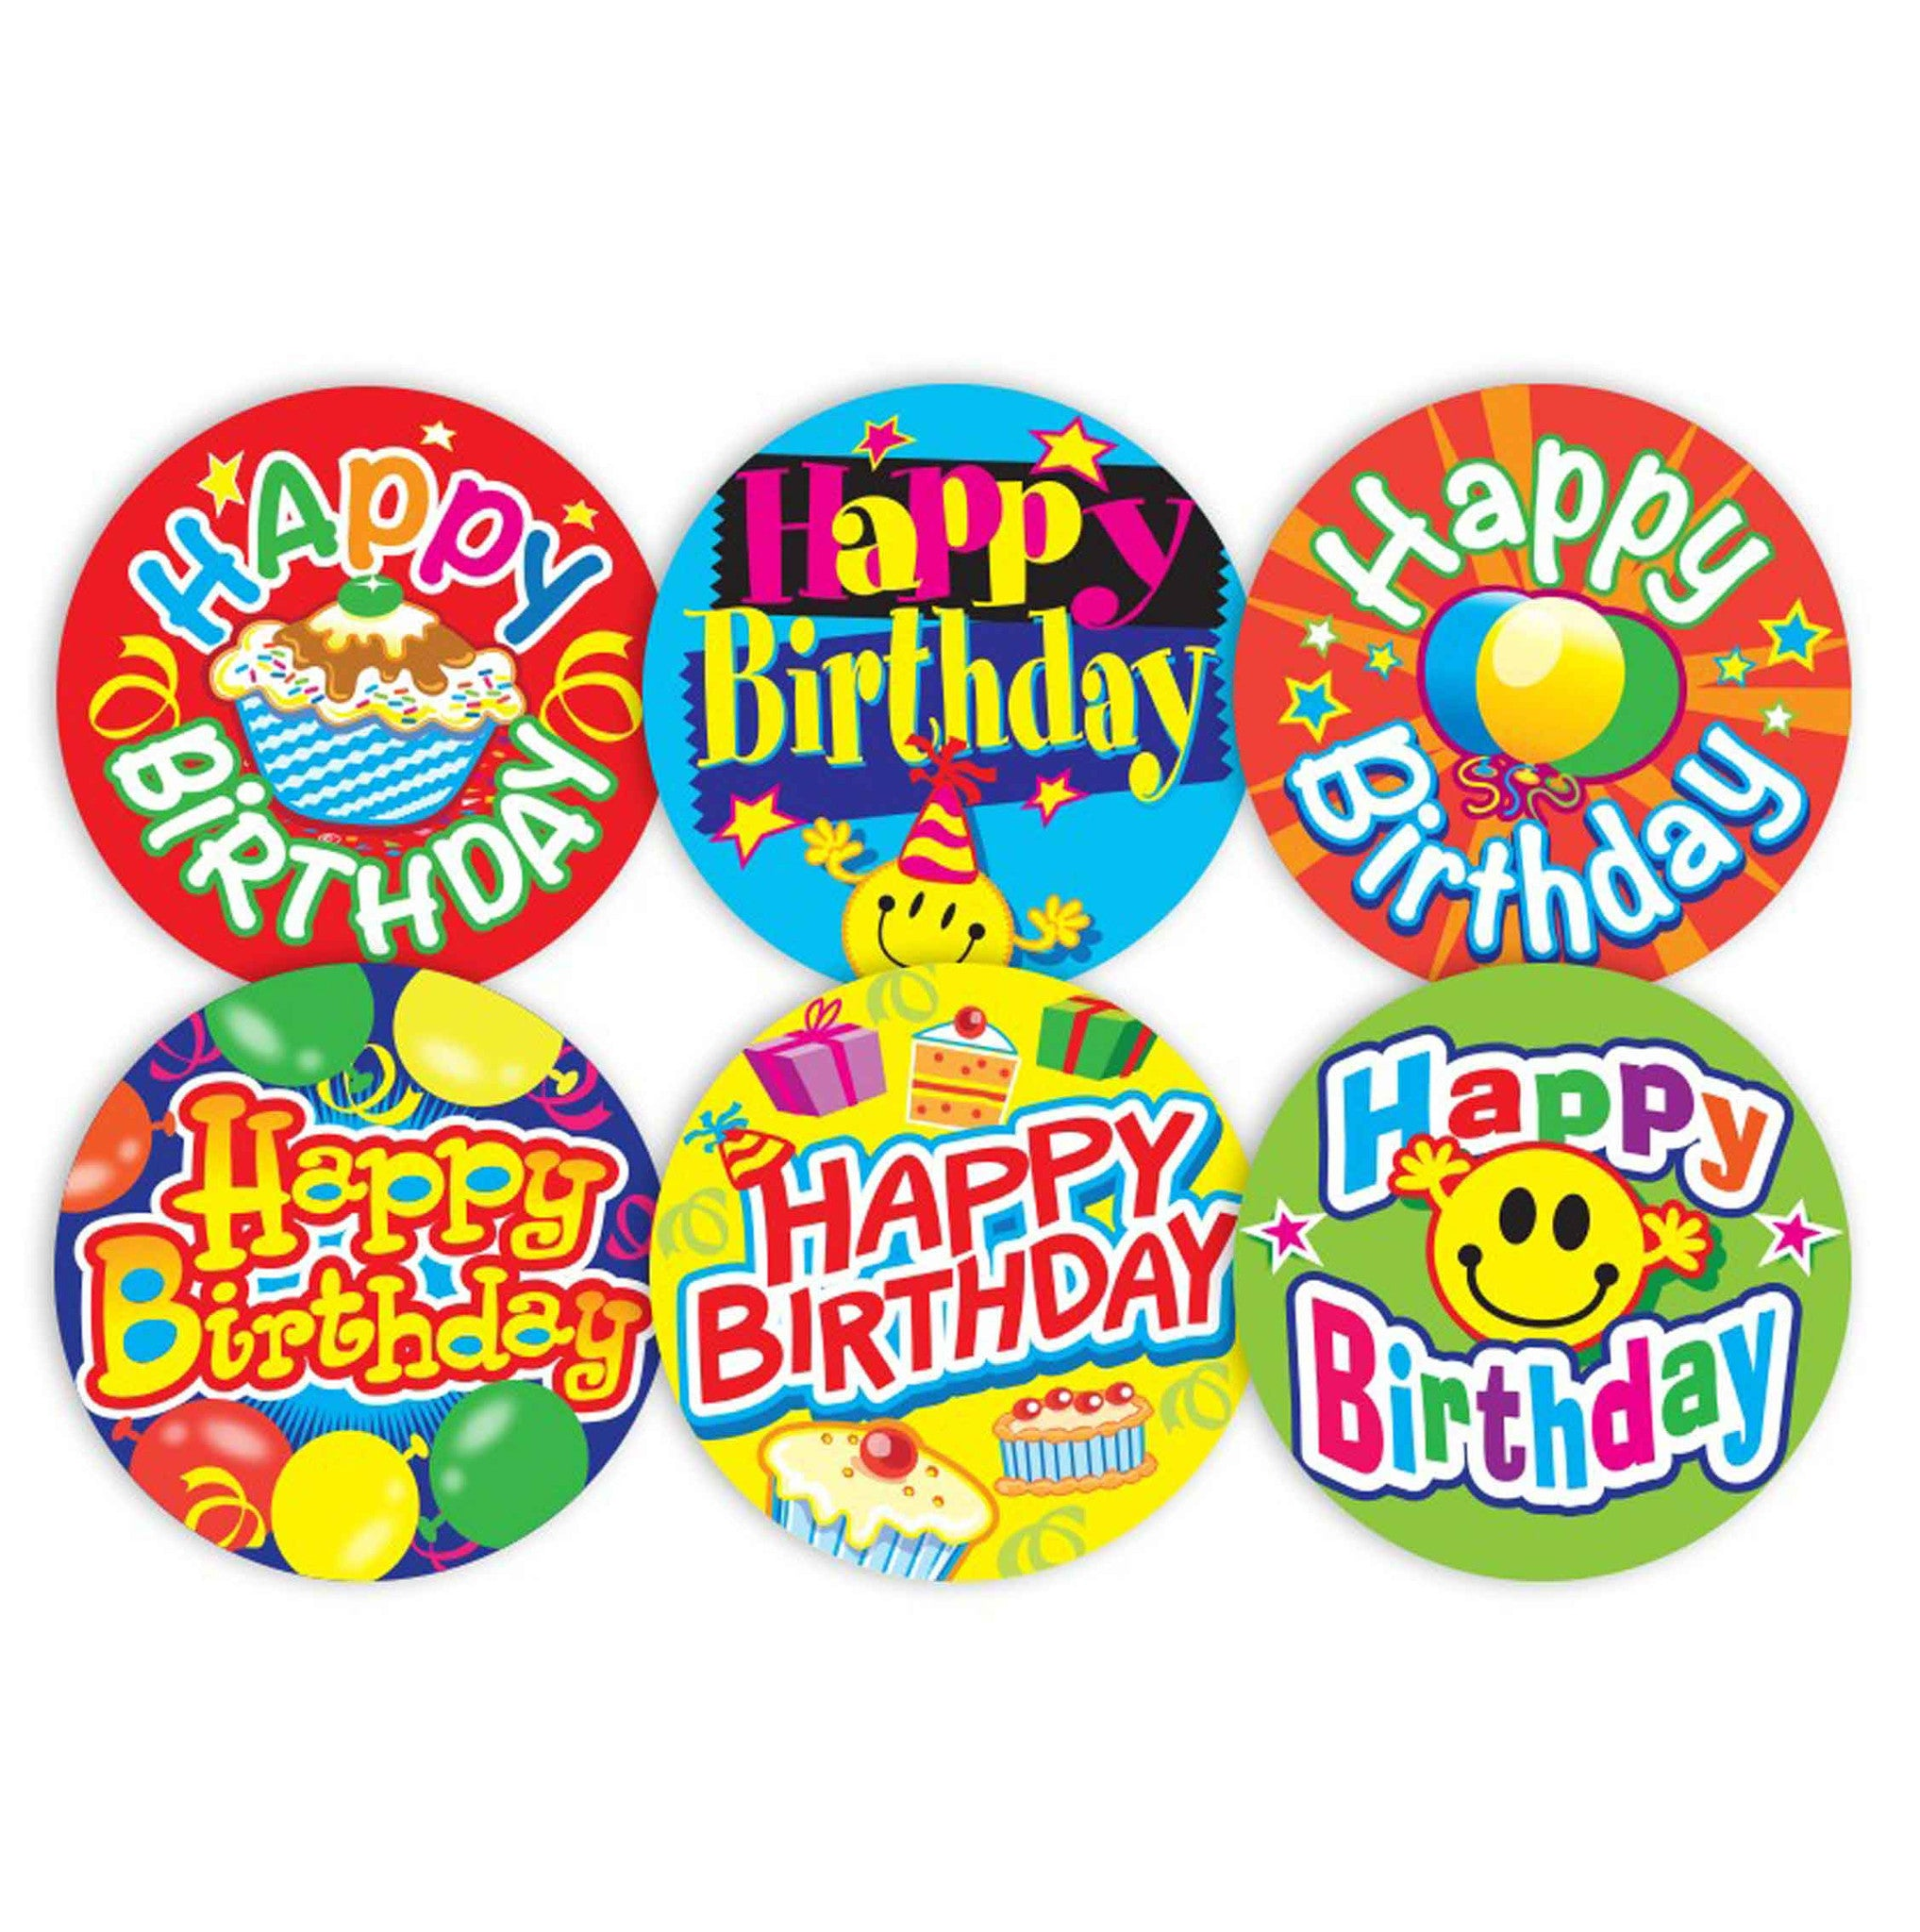 Happy birthday stickers school merit solutions